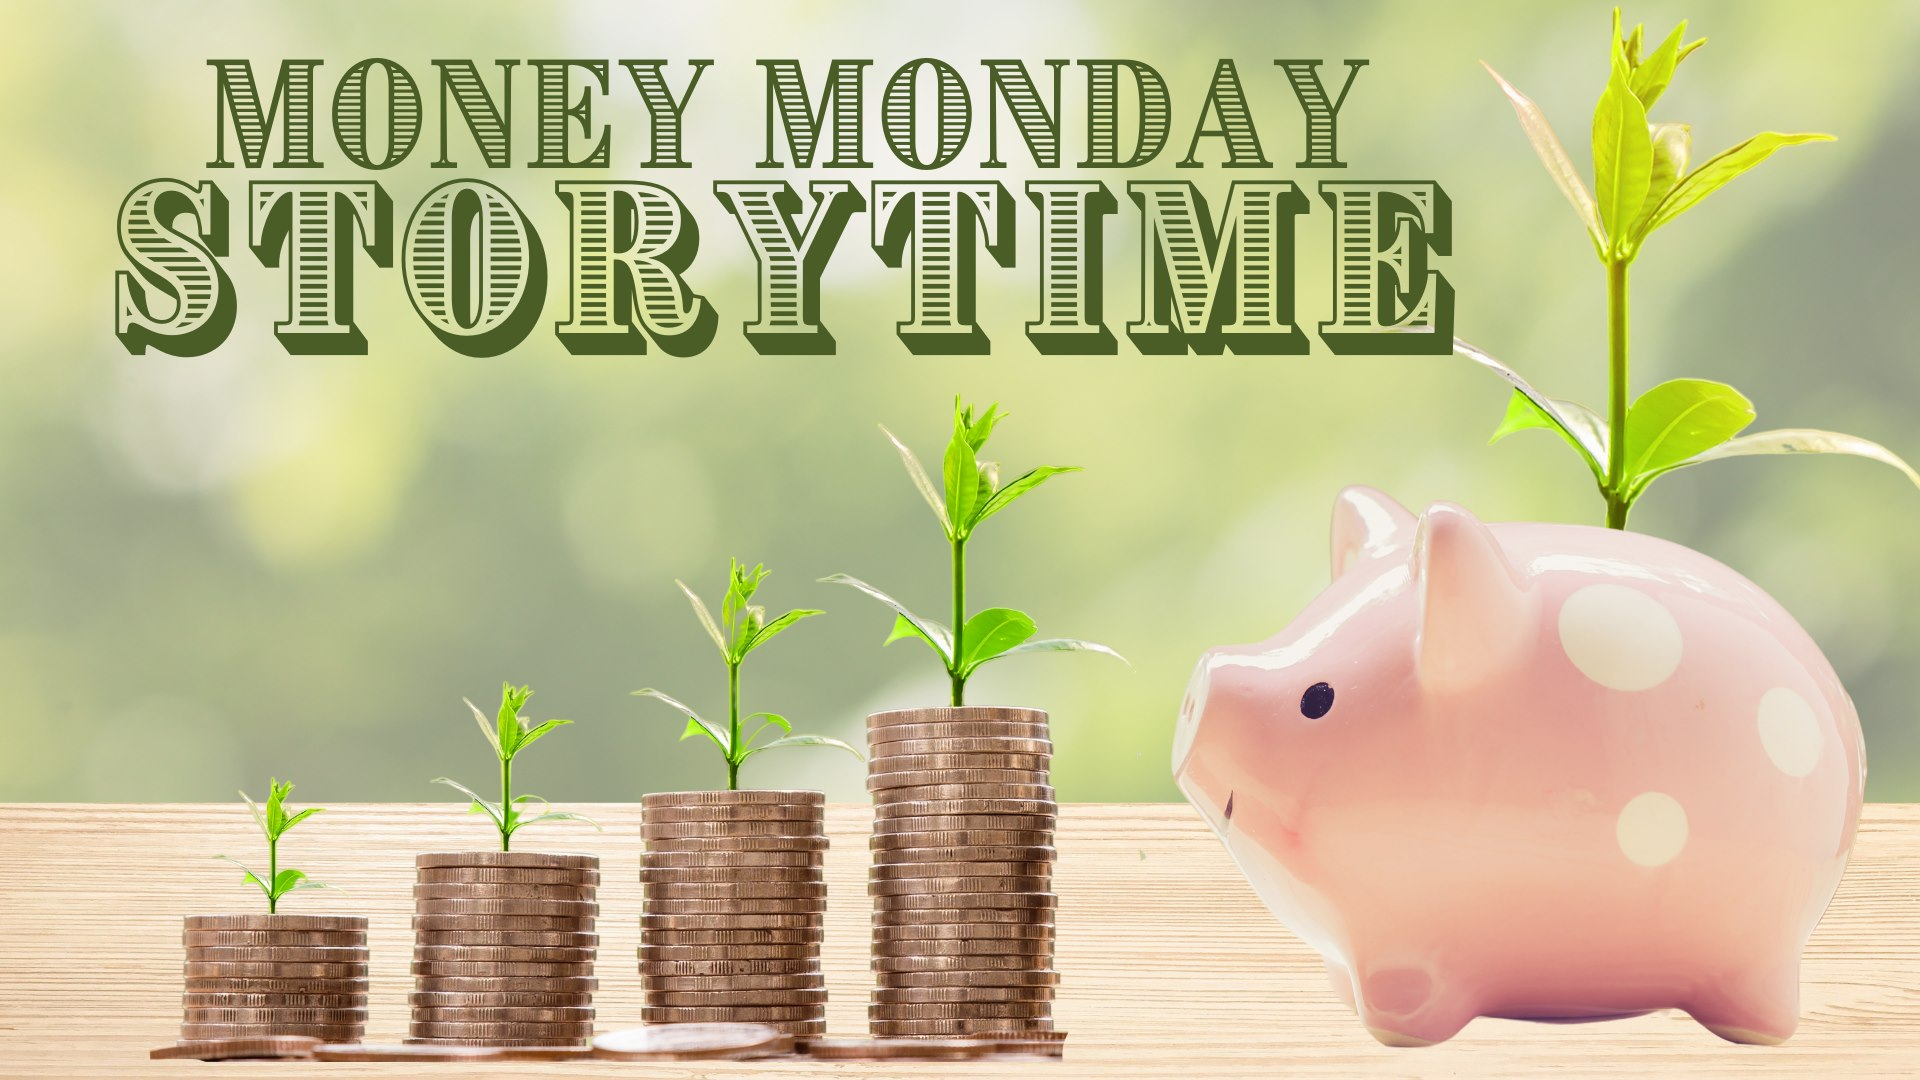 Money Monday Storytime, text in foreground. Incrementally increasing stacks of coins leading to a pink piggy bank. Each of the stacks of coins has an incrementally larger plant sprout growing out of it leading to the biggest sprout growing from the piggy bank.